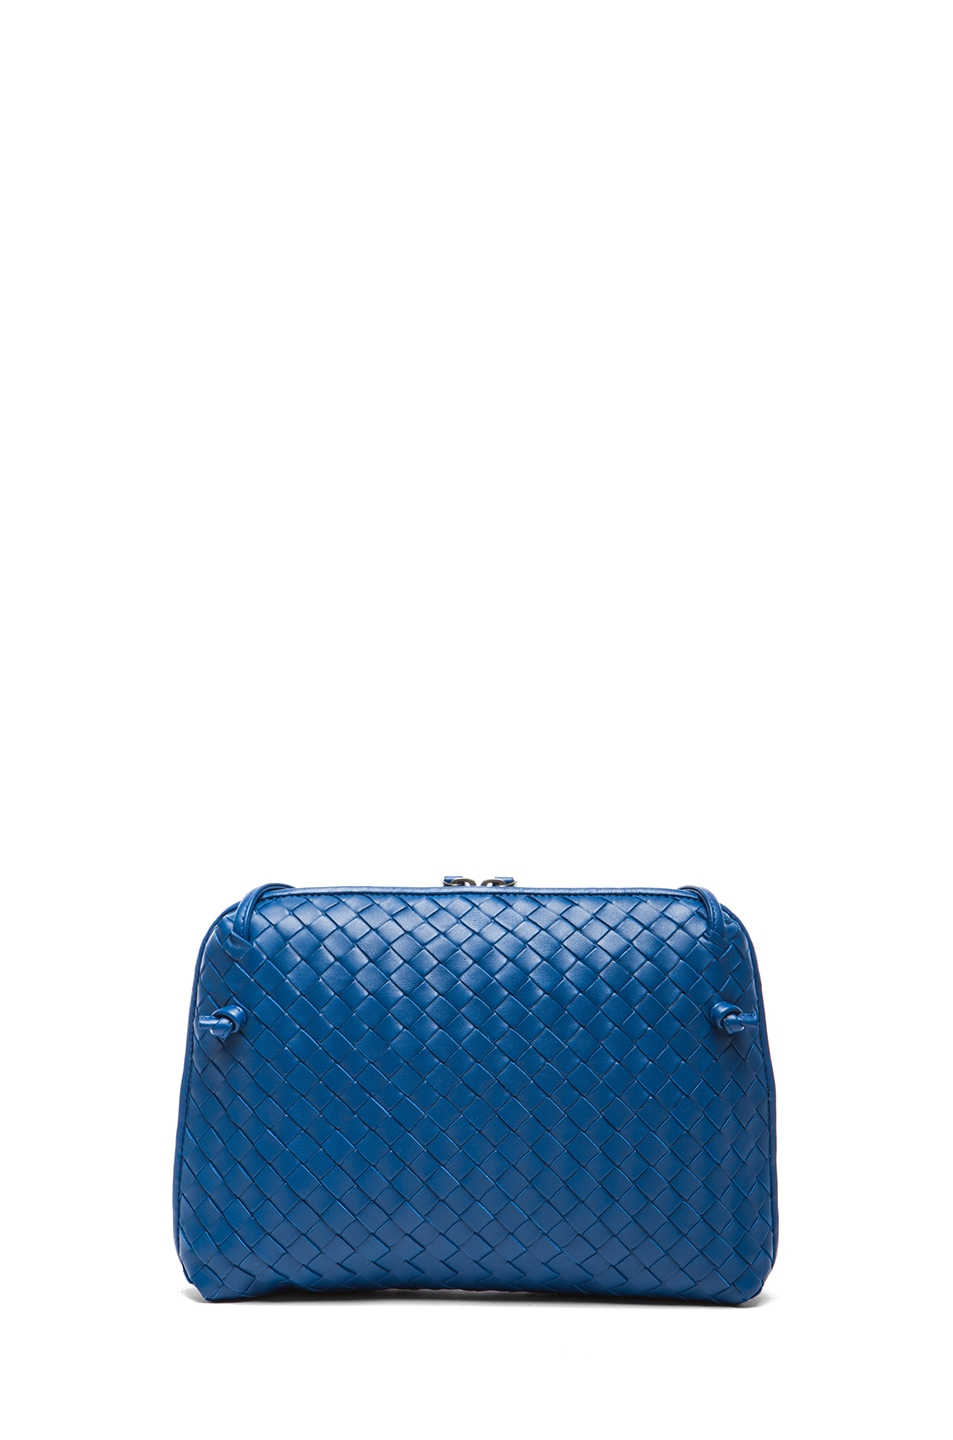 Image 2 of Bottega Veneta Intrecciato Nappa Cross Body Bag in Electrique